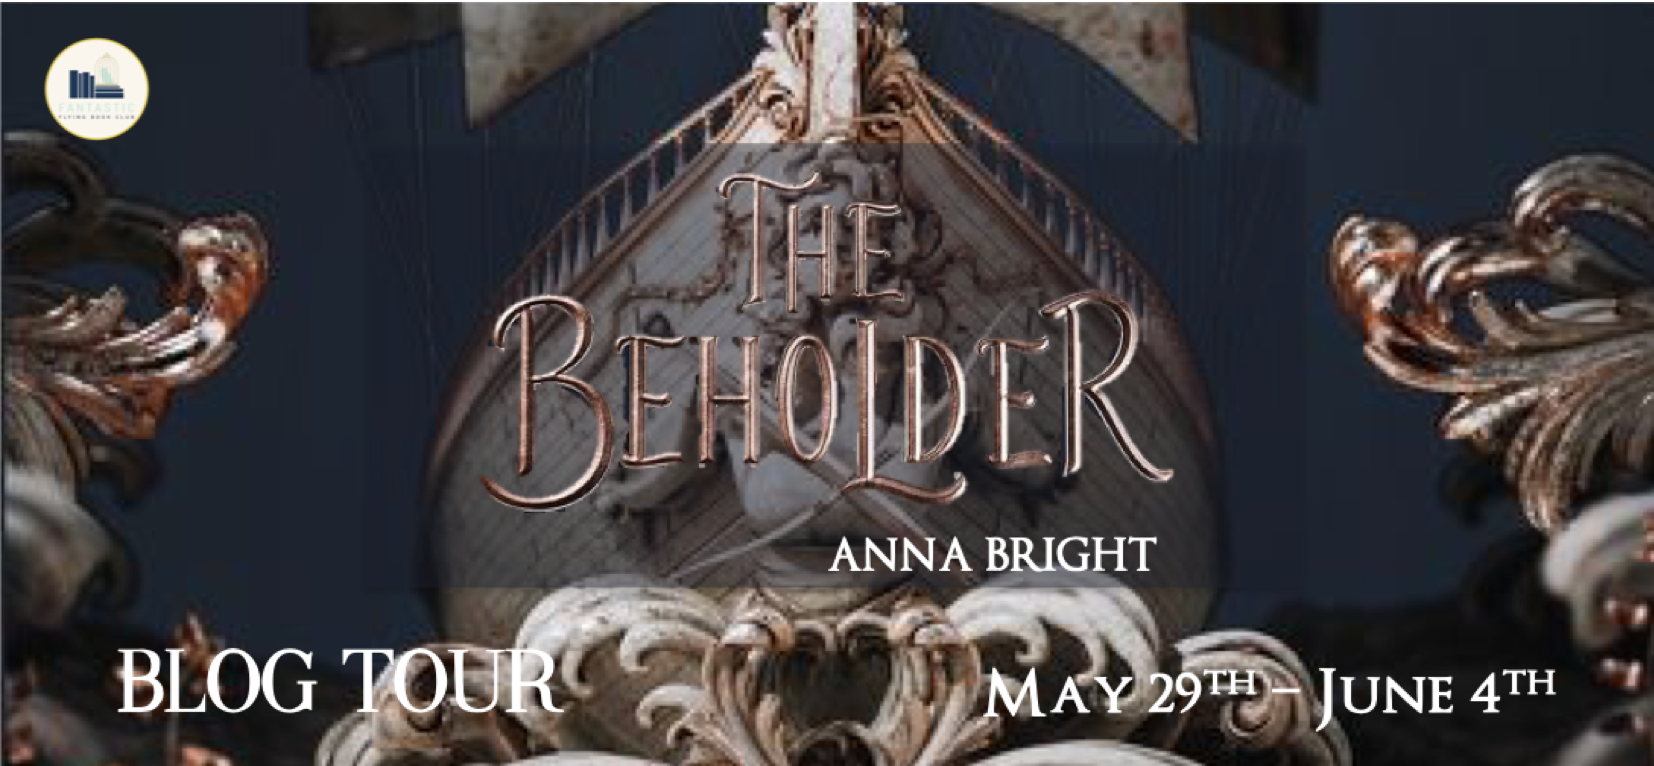 Blog Tour: The Beholder by Anna Bright (Interview + Giveaway!)